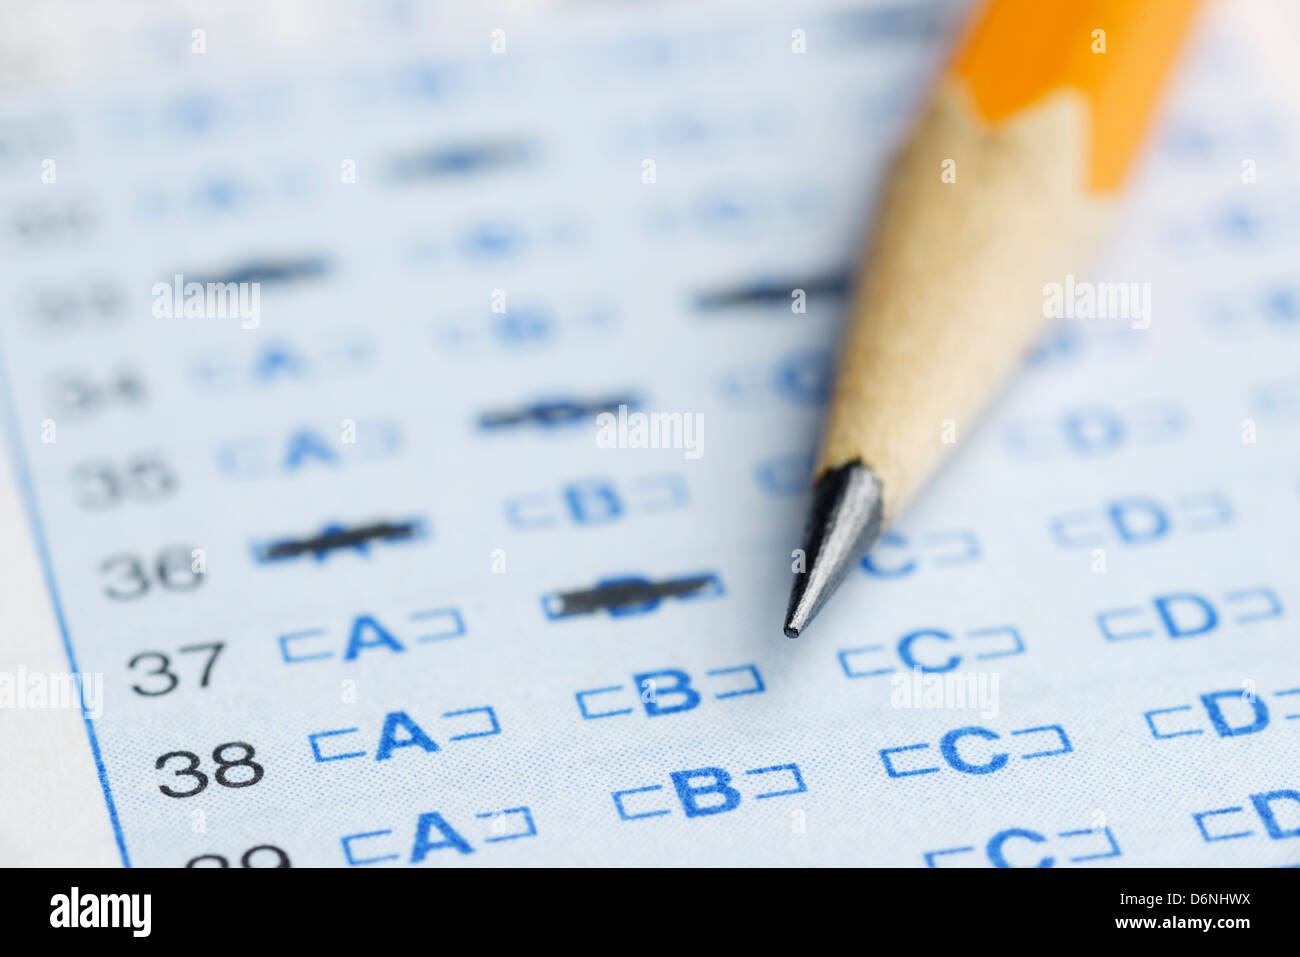 Optical scan answer sheet for a school exam - Stock Image